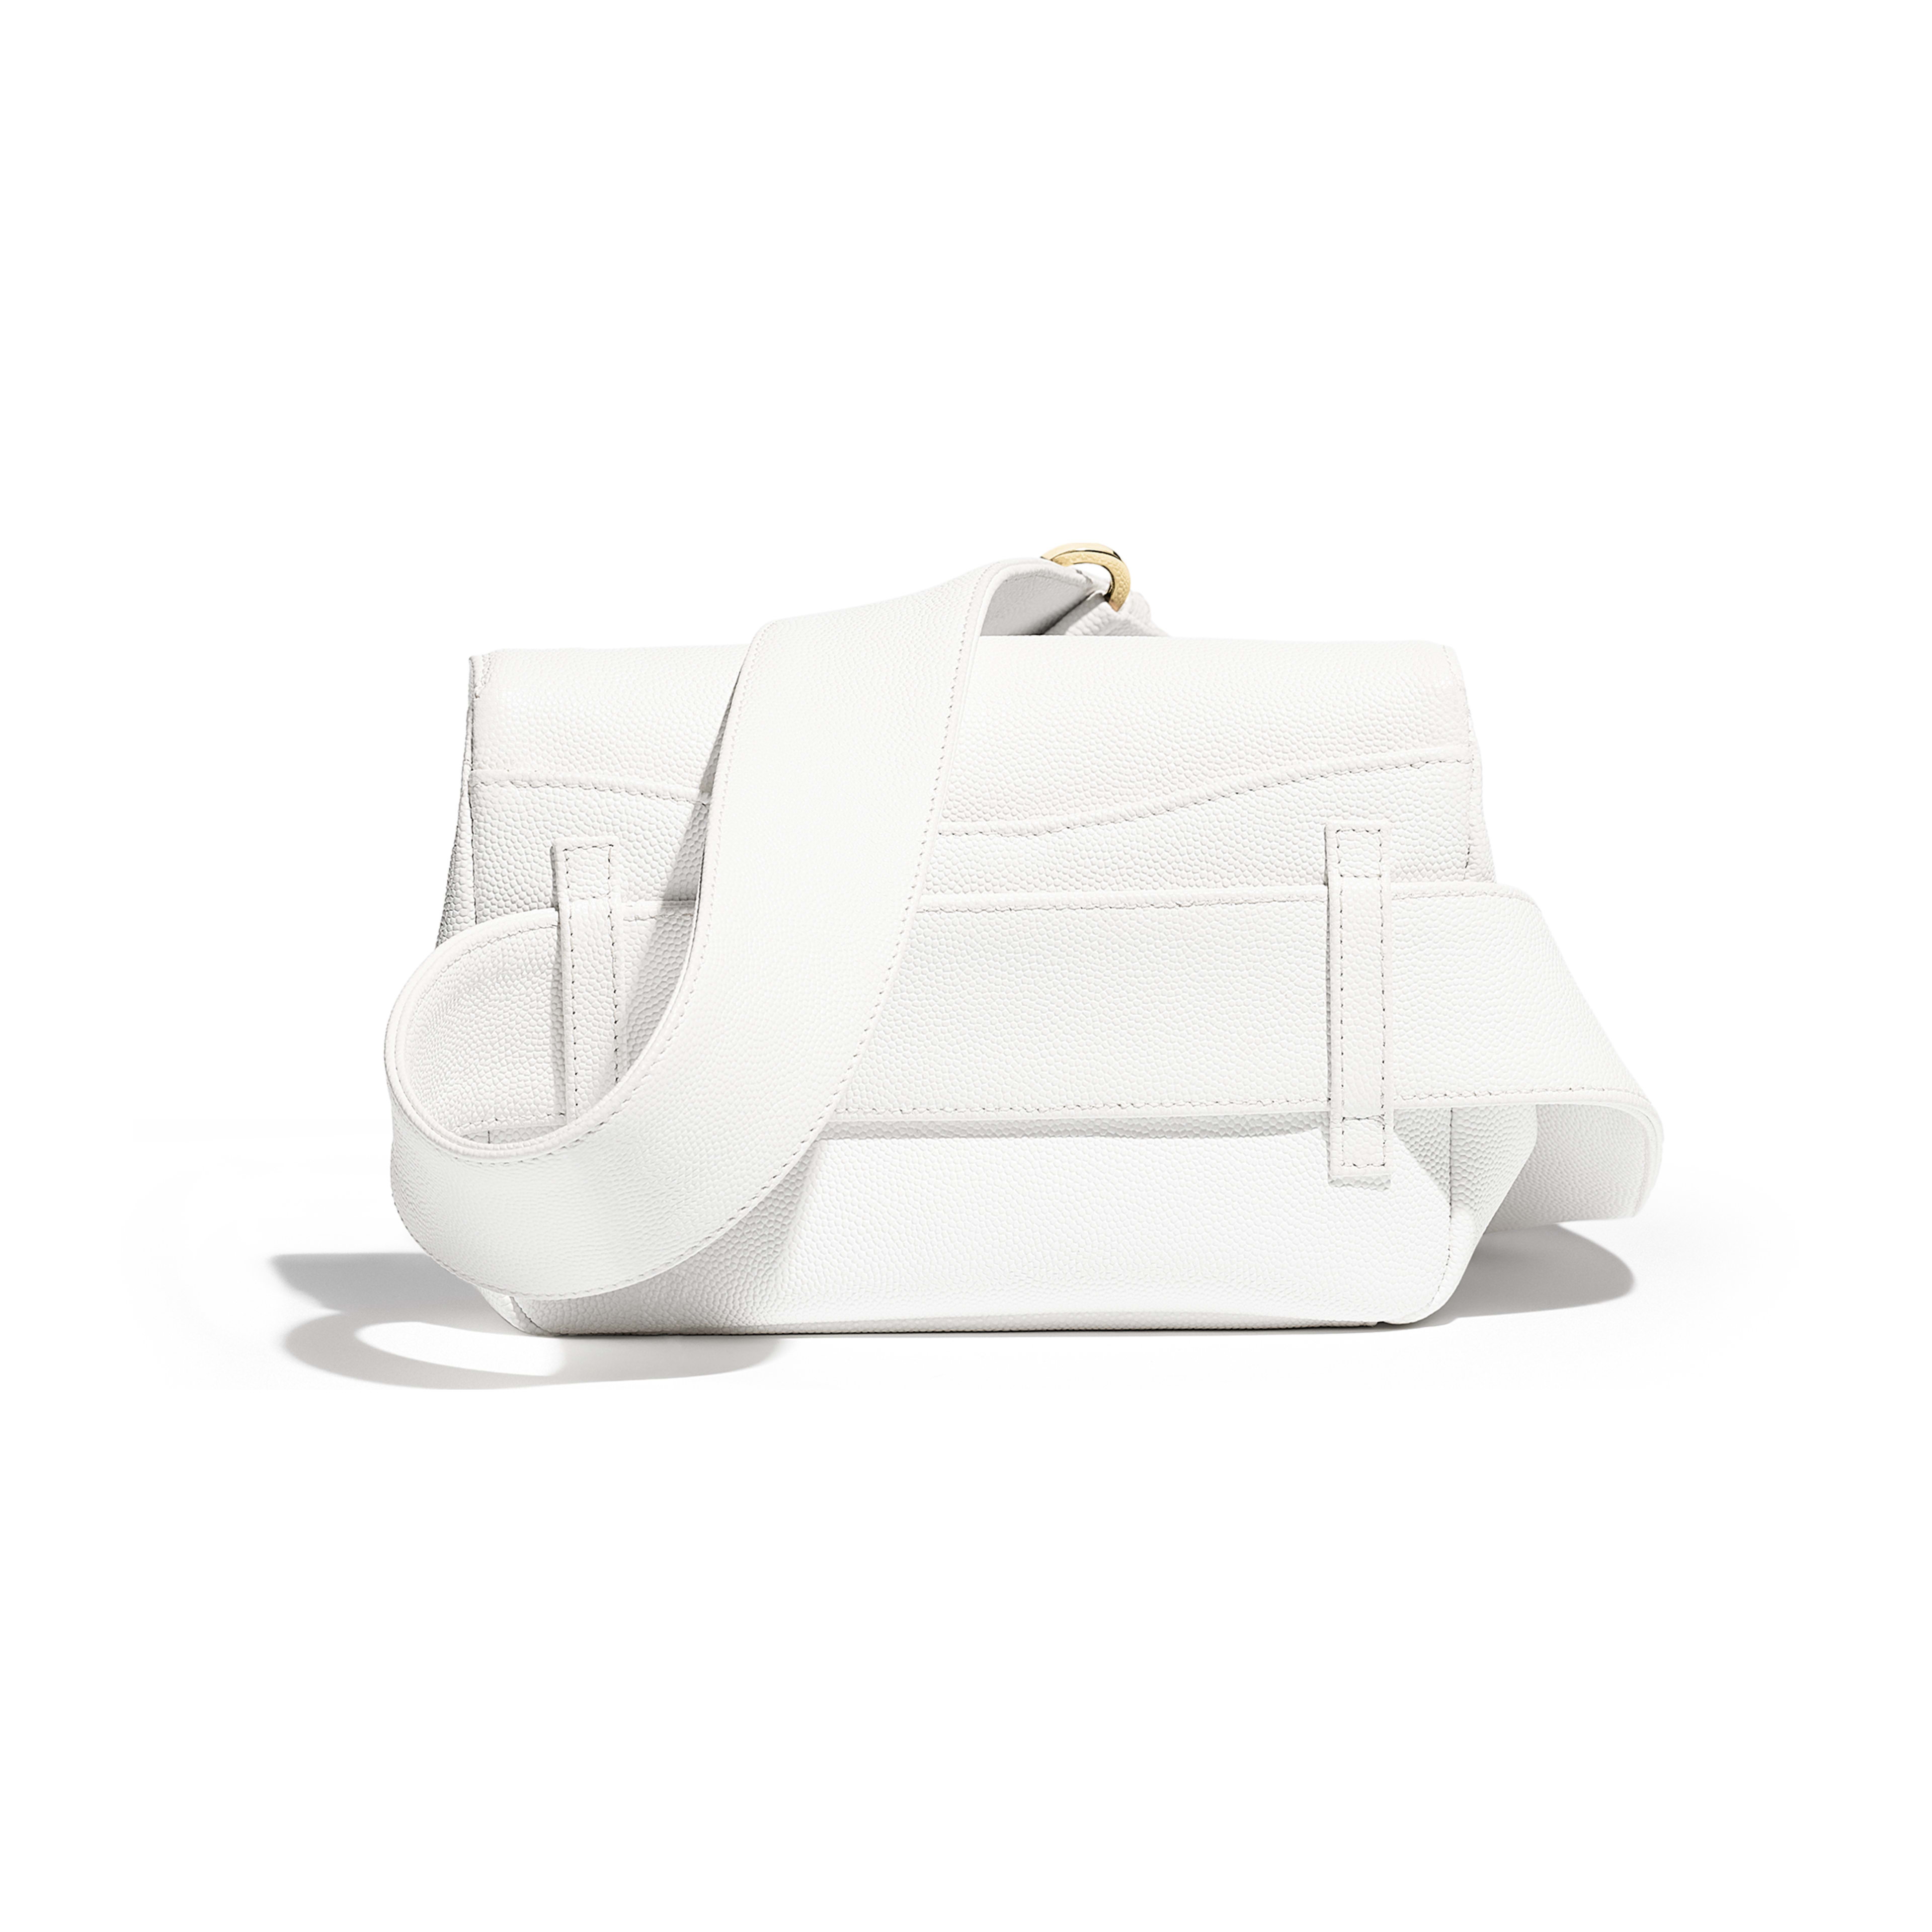 Waist Bag - White - Embroidered Grained Calfskin & Gold-Tone Metal - Alternative view - see full sized version